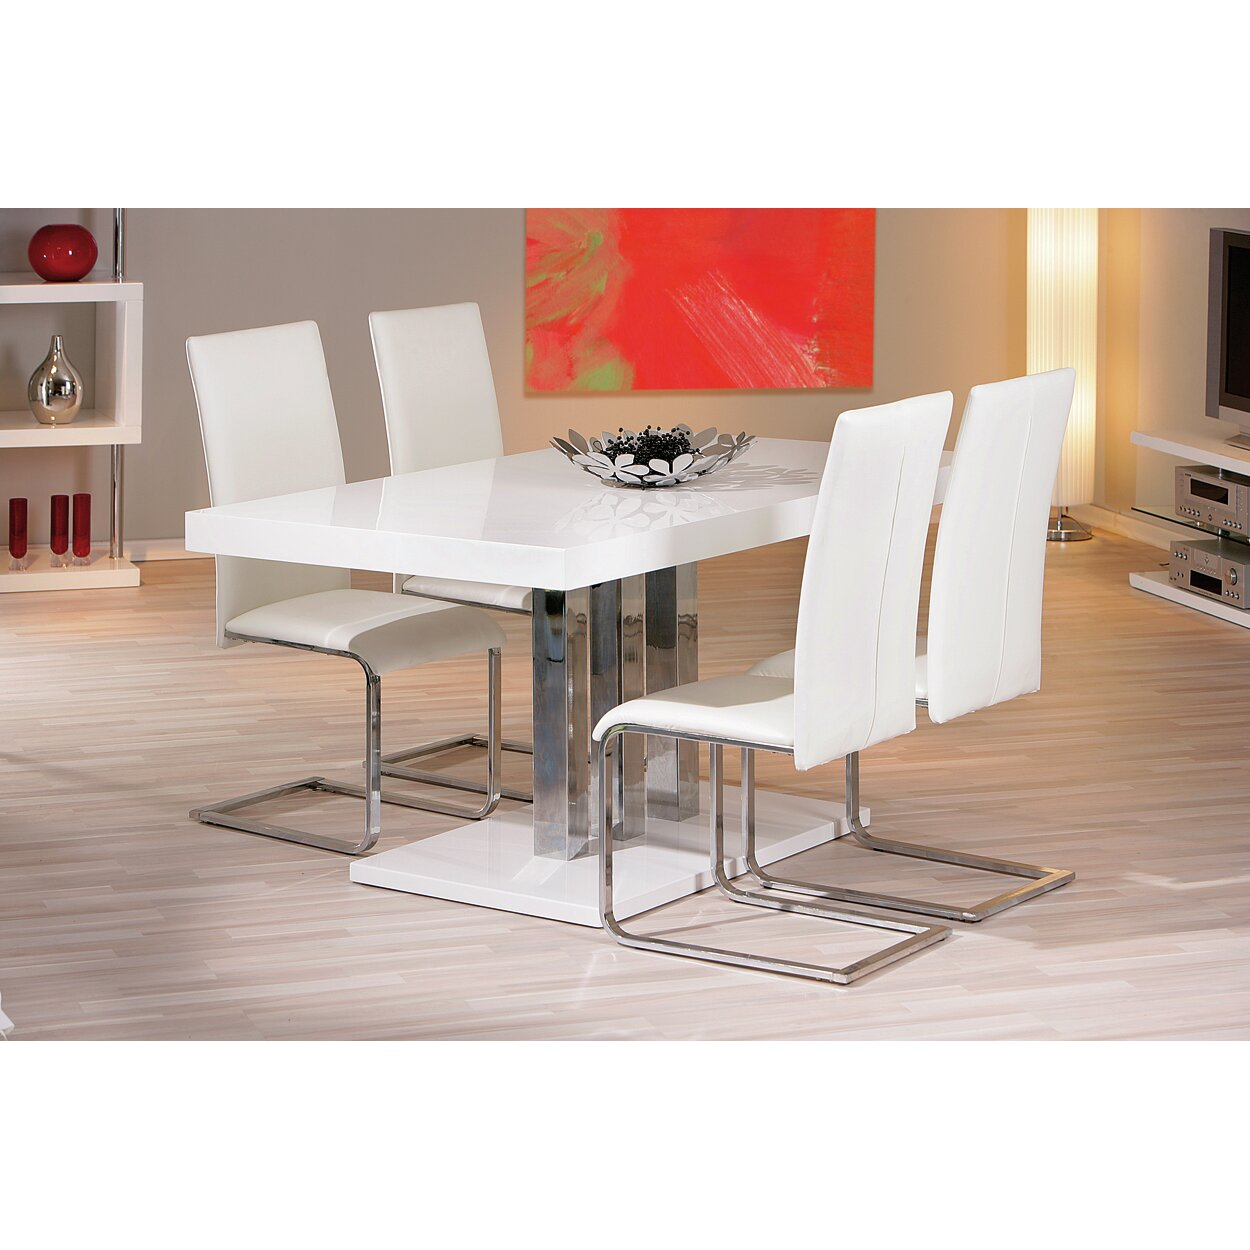 House additions palazzo dining table reviews wayfair uk for Table salle a manger 8 personnes